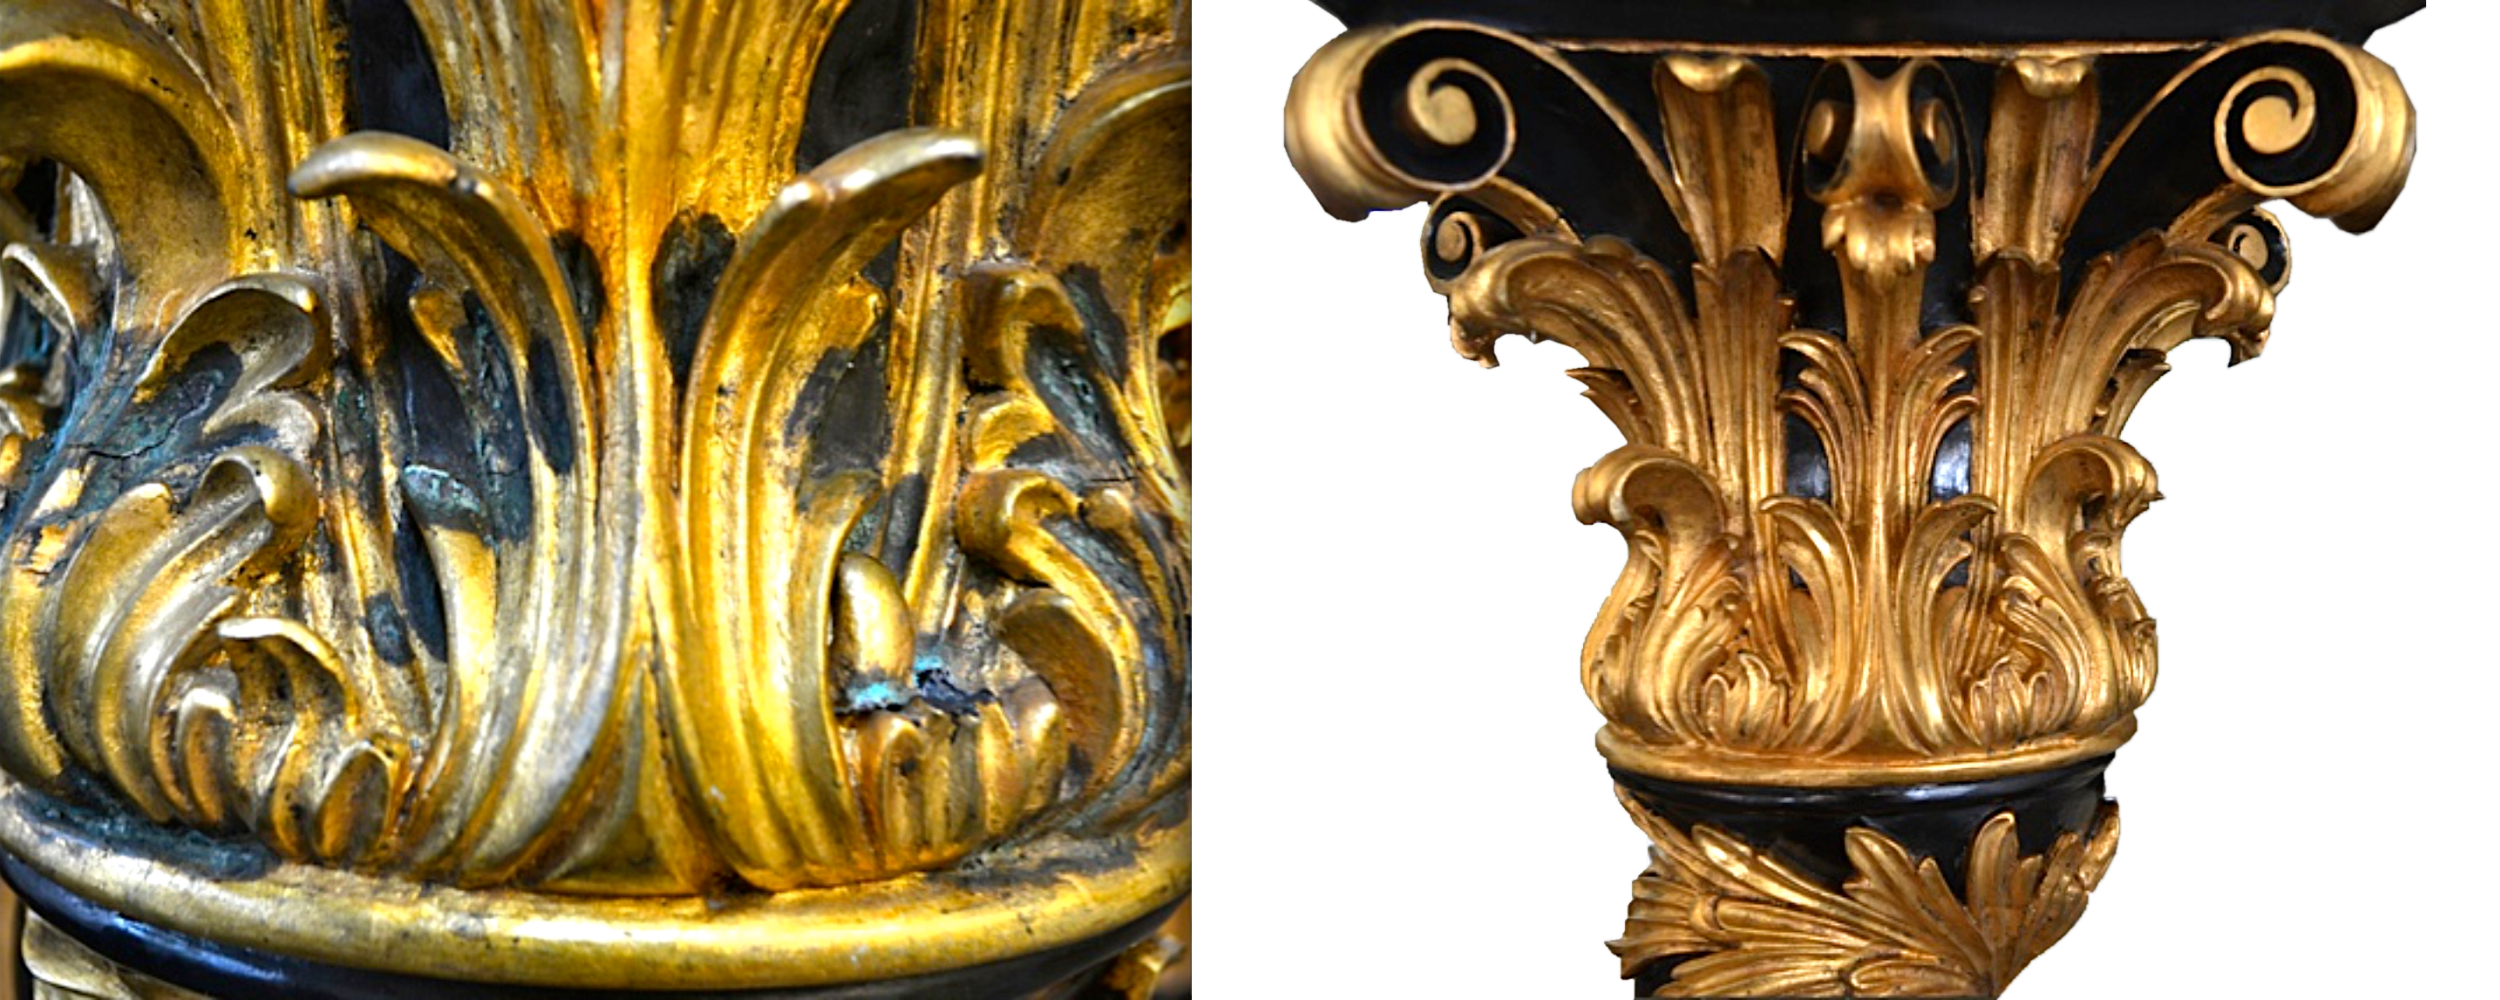 Restoratio-Before-After-Column-Gilding.jpg